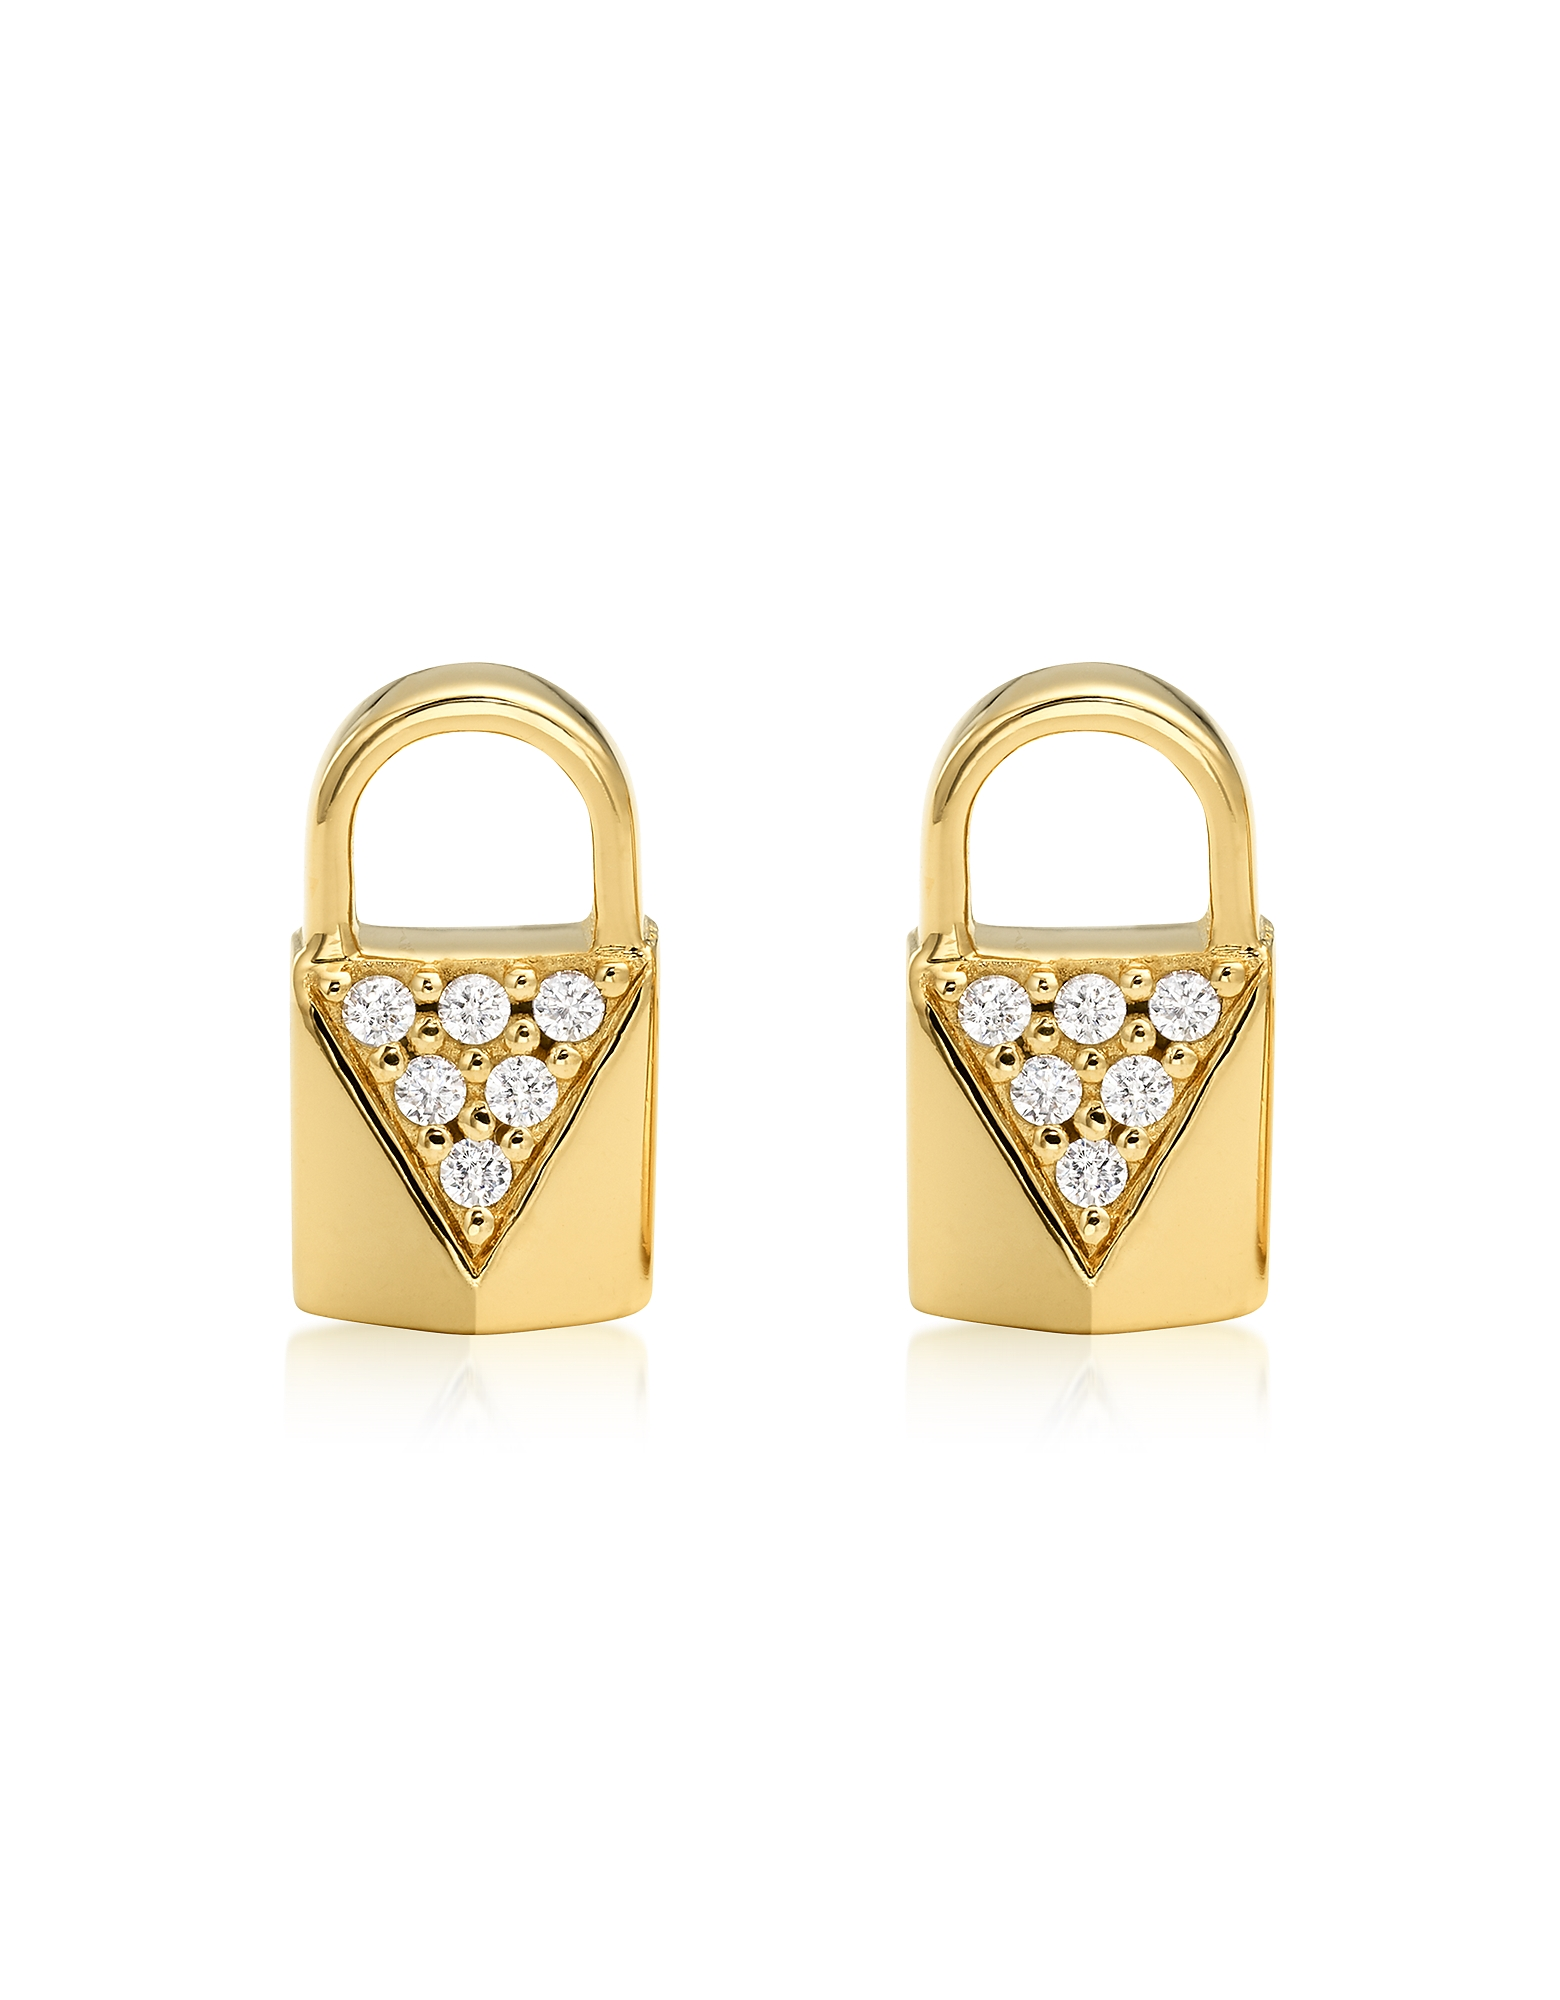 Mercer Lock 14K Gold Plated Sterling Silver Pavé Studs